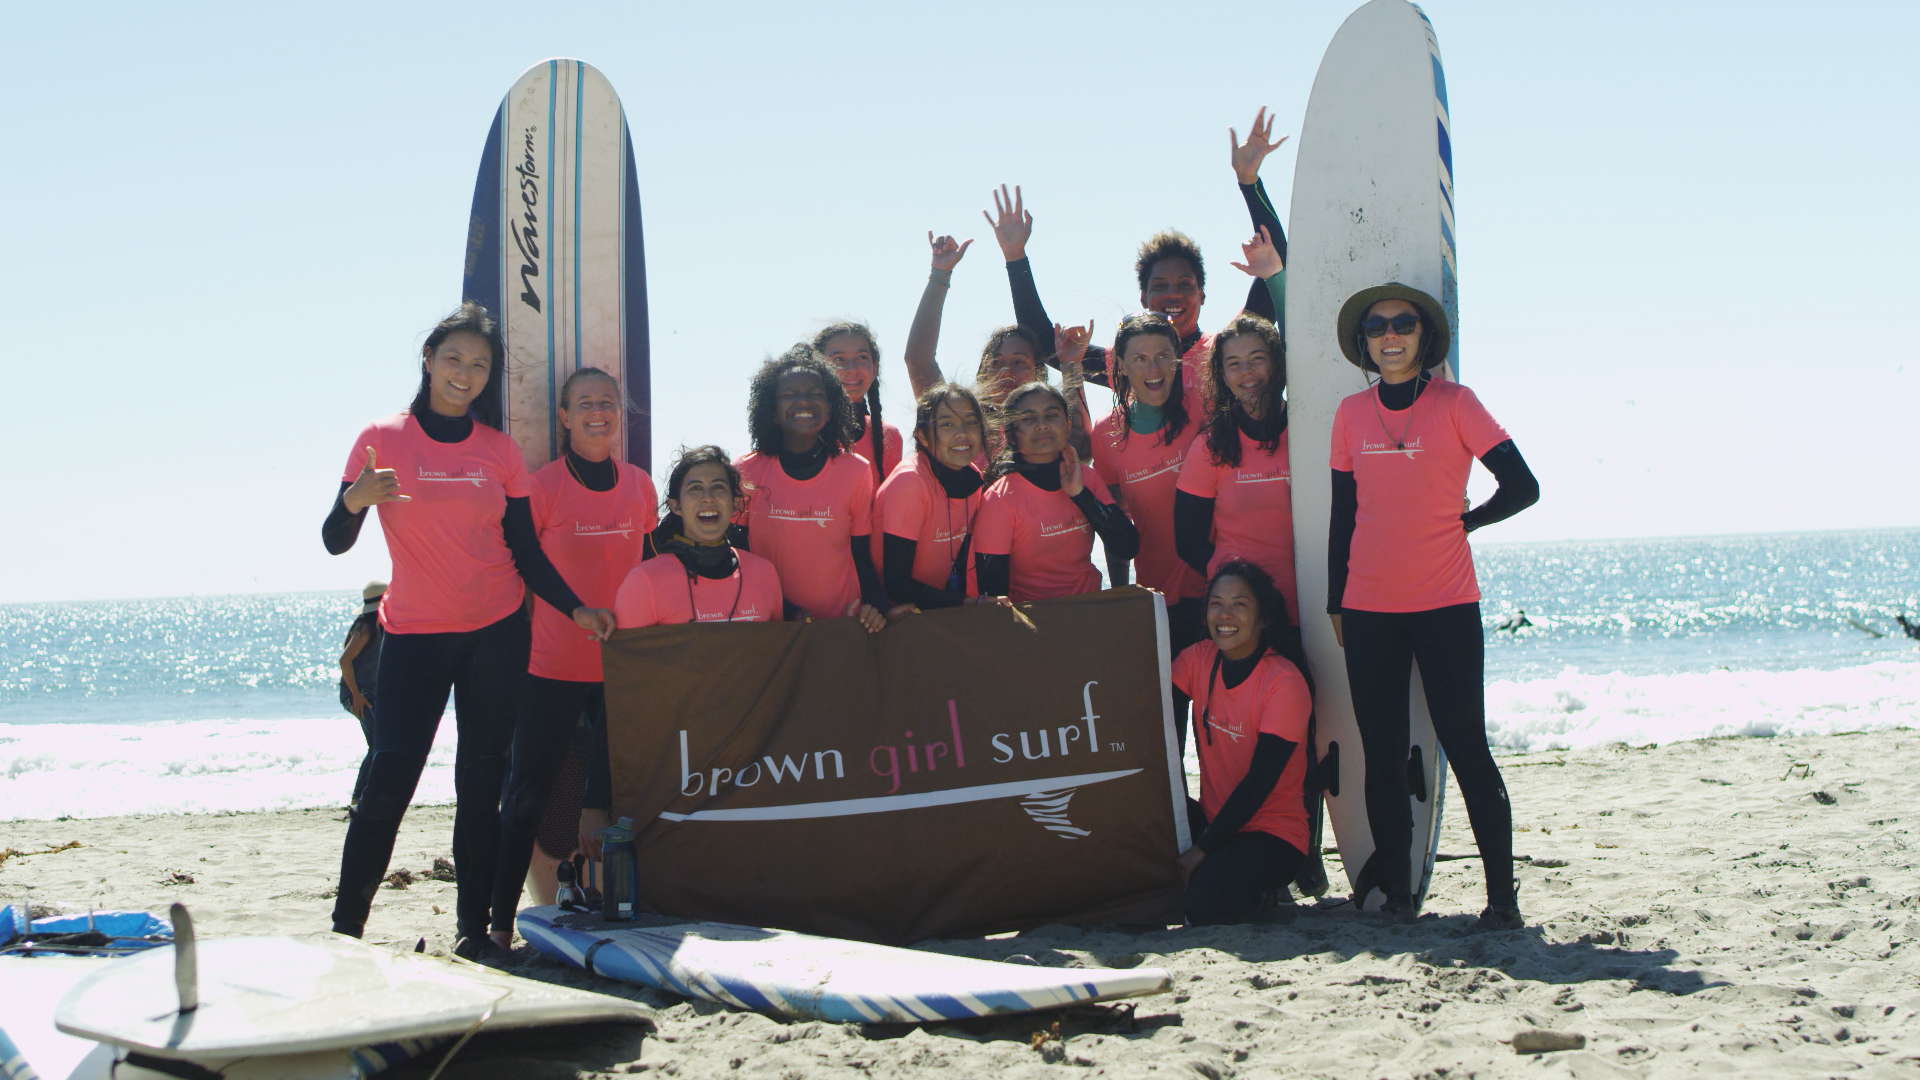 Support us! - Thank you for supporting Brown Girl Surf to build a more diverse, joyful, and environmentally reverent women's surf culture. You can make a recurring or one-time donation online below. To donate by check, please send a check made out to our fiscal sponsor Social Good Fund, with Brown Girl Surf in the memo, to Brown Girl Surf c/o Social Good Fund, PO Box 5473, Richmond, CA 94805